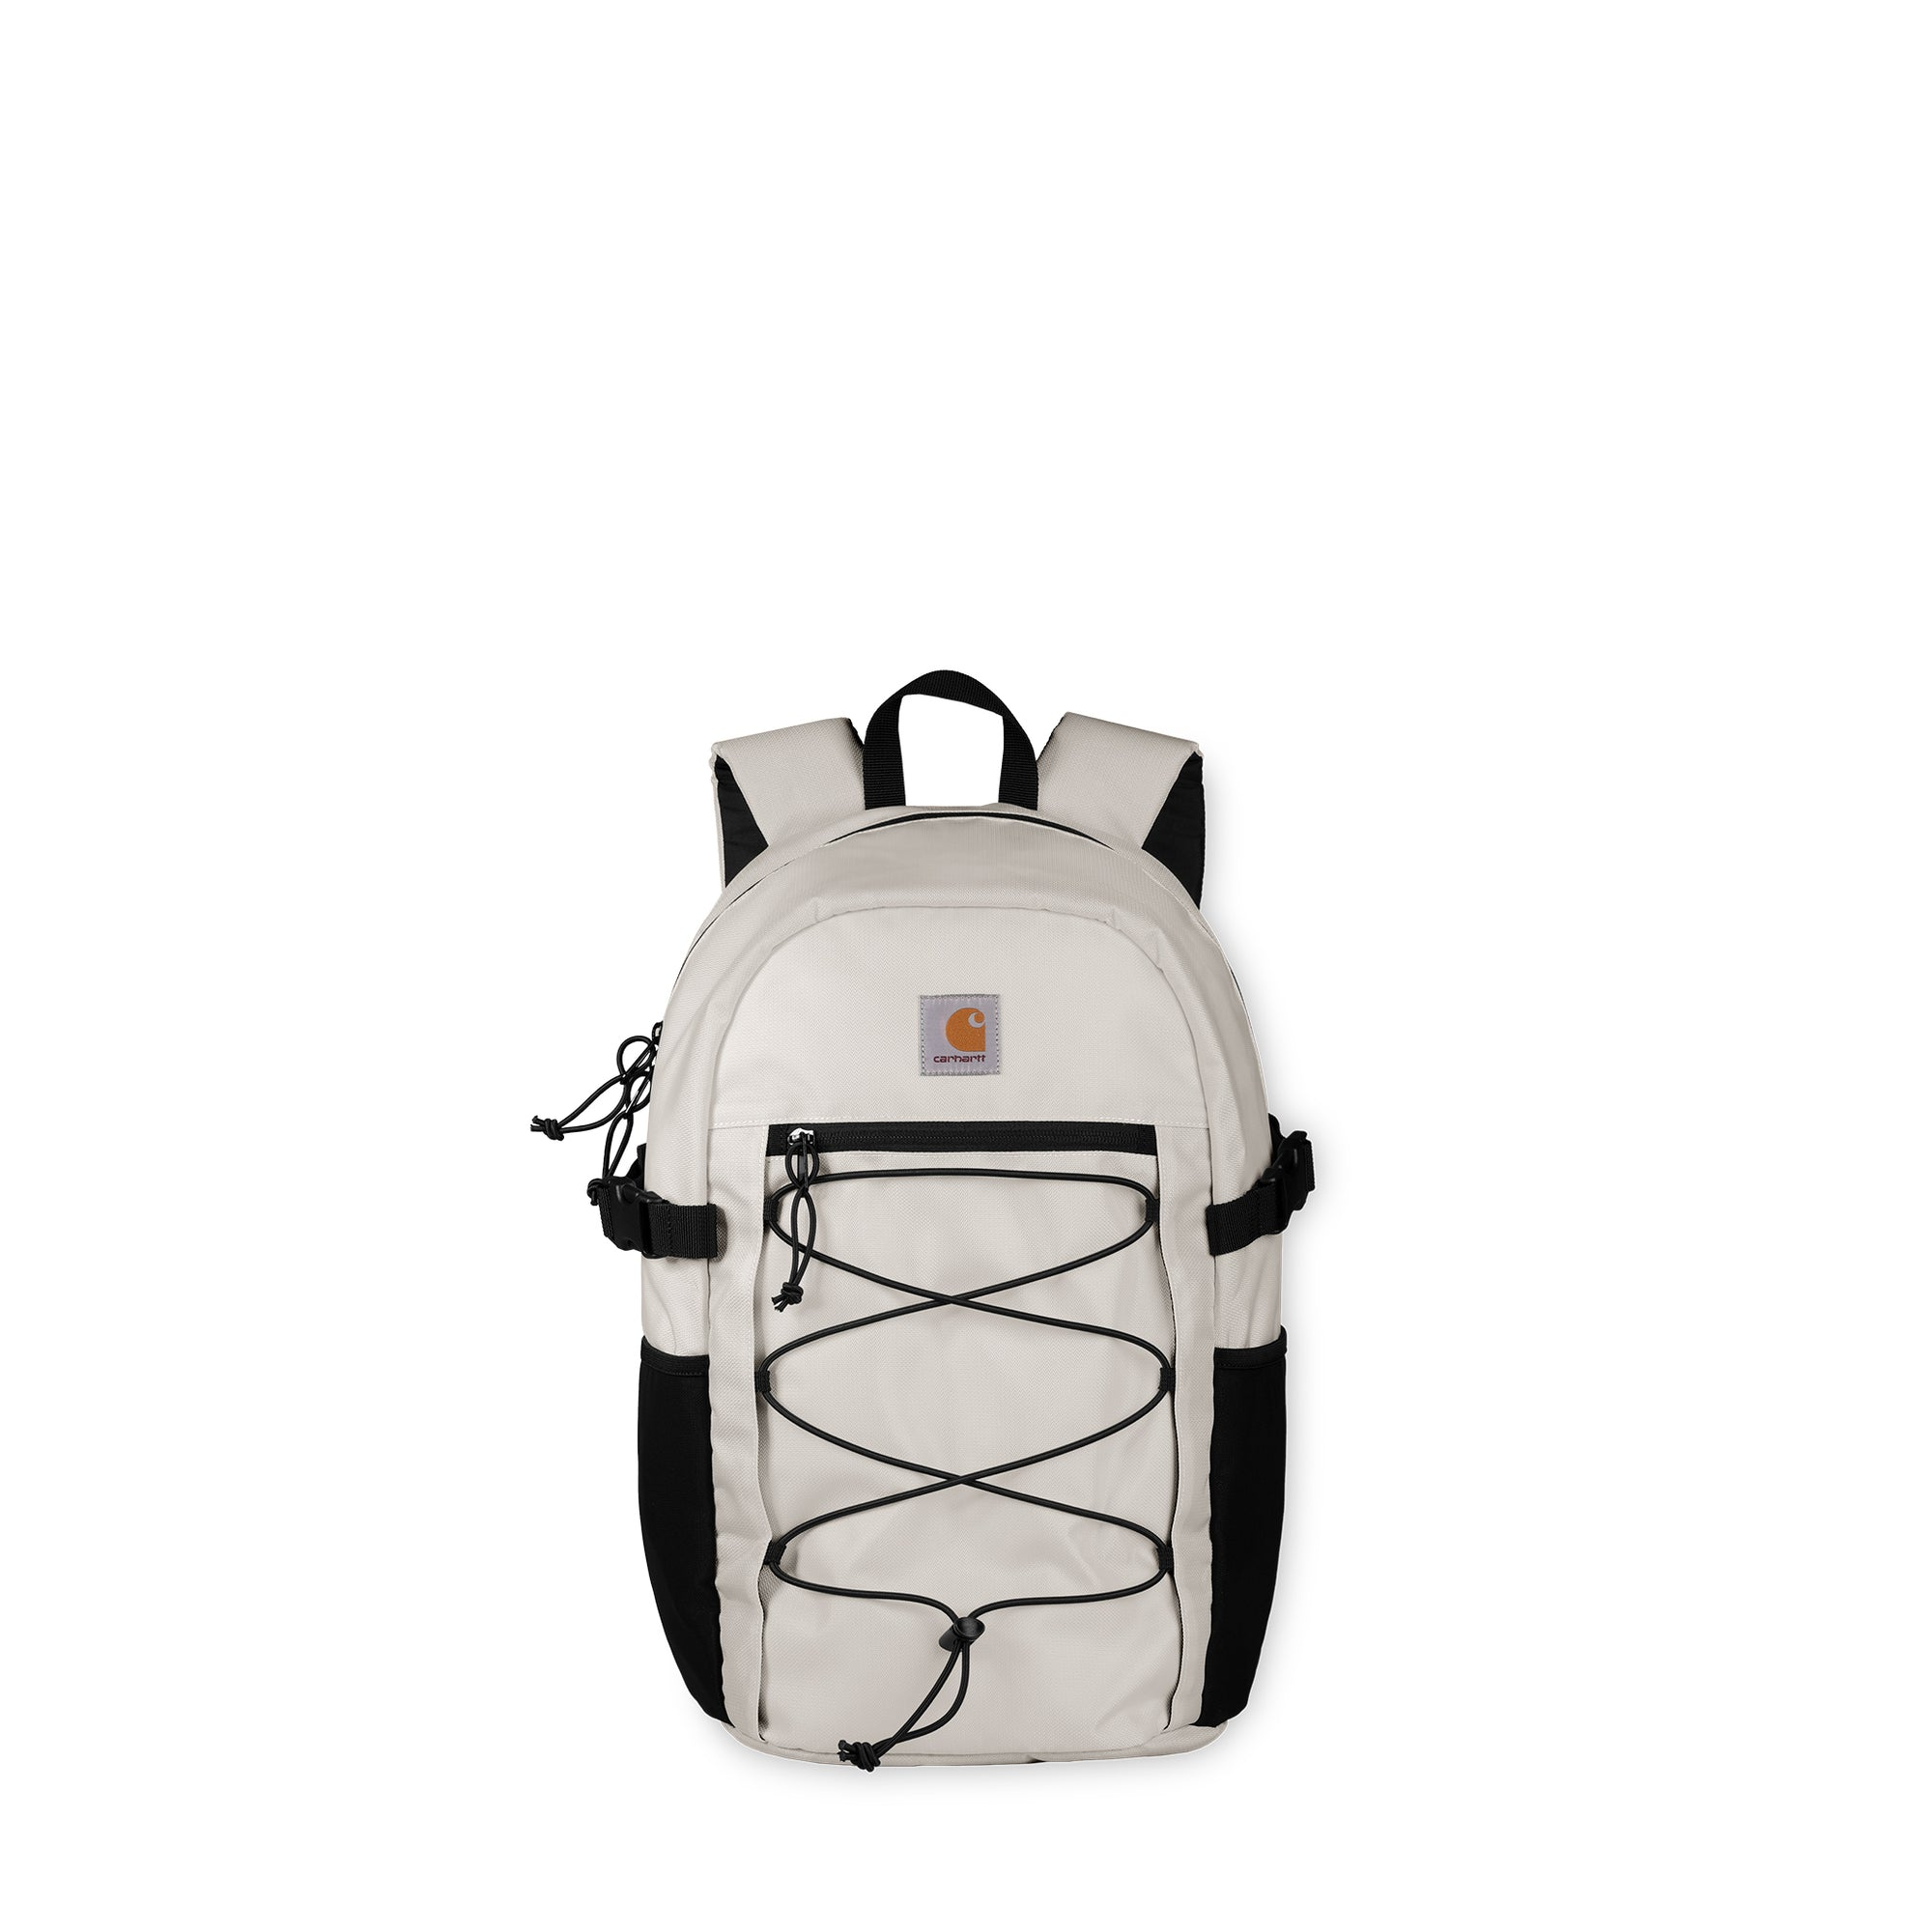 Carhartt WIP Delta Backpack: Glaze - The Union Project